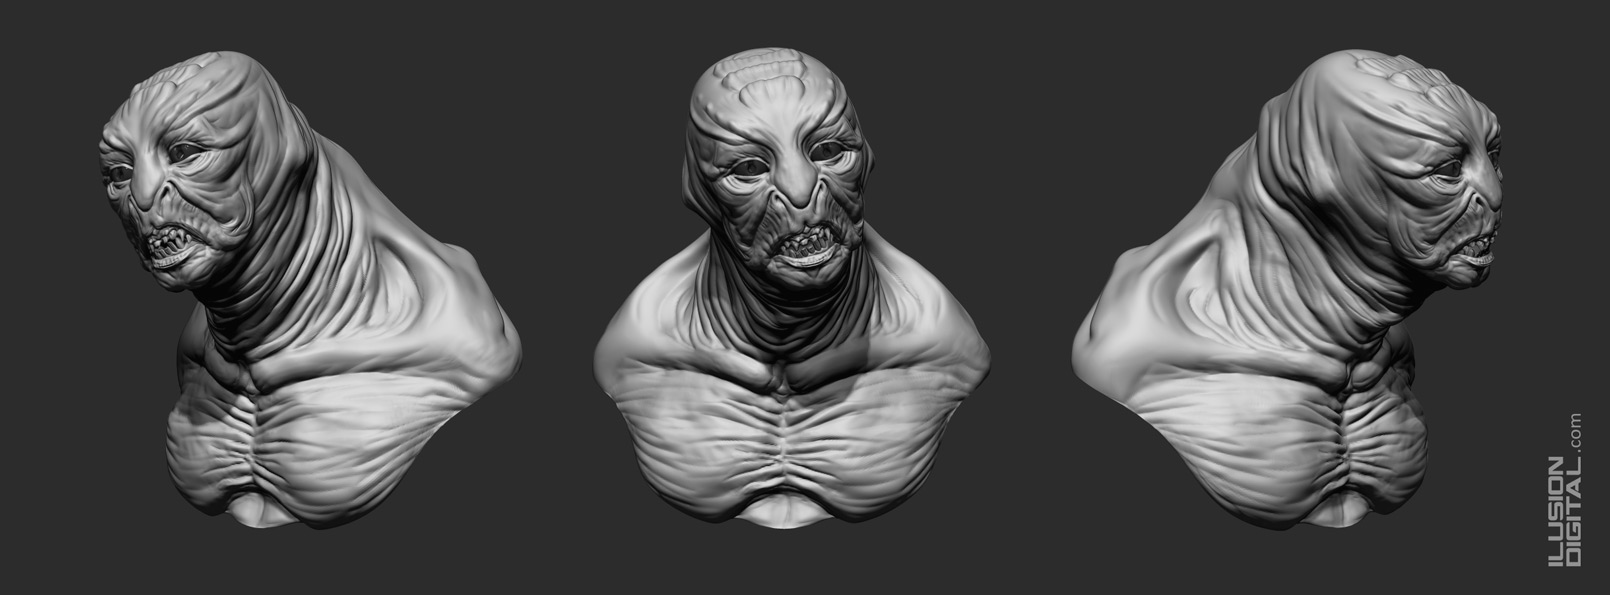 speed_sculpt01a.jpg